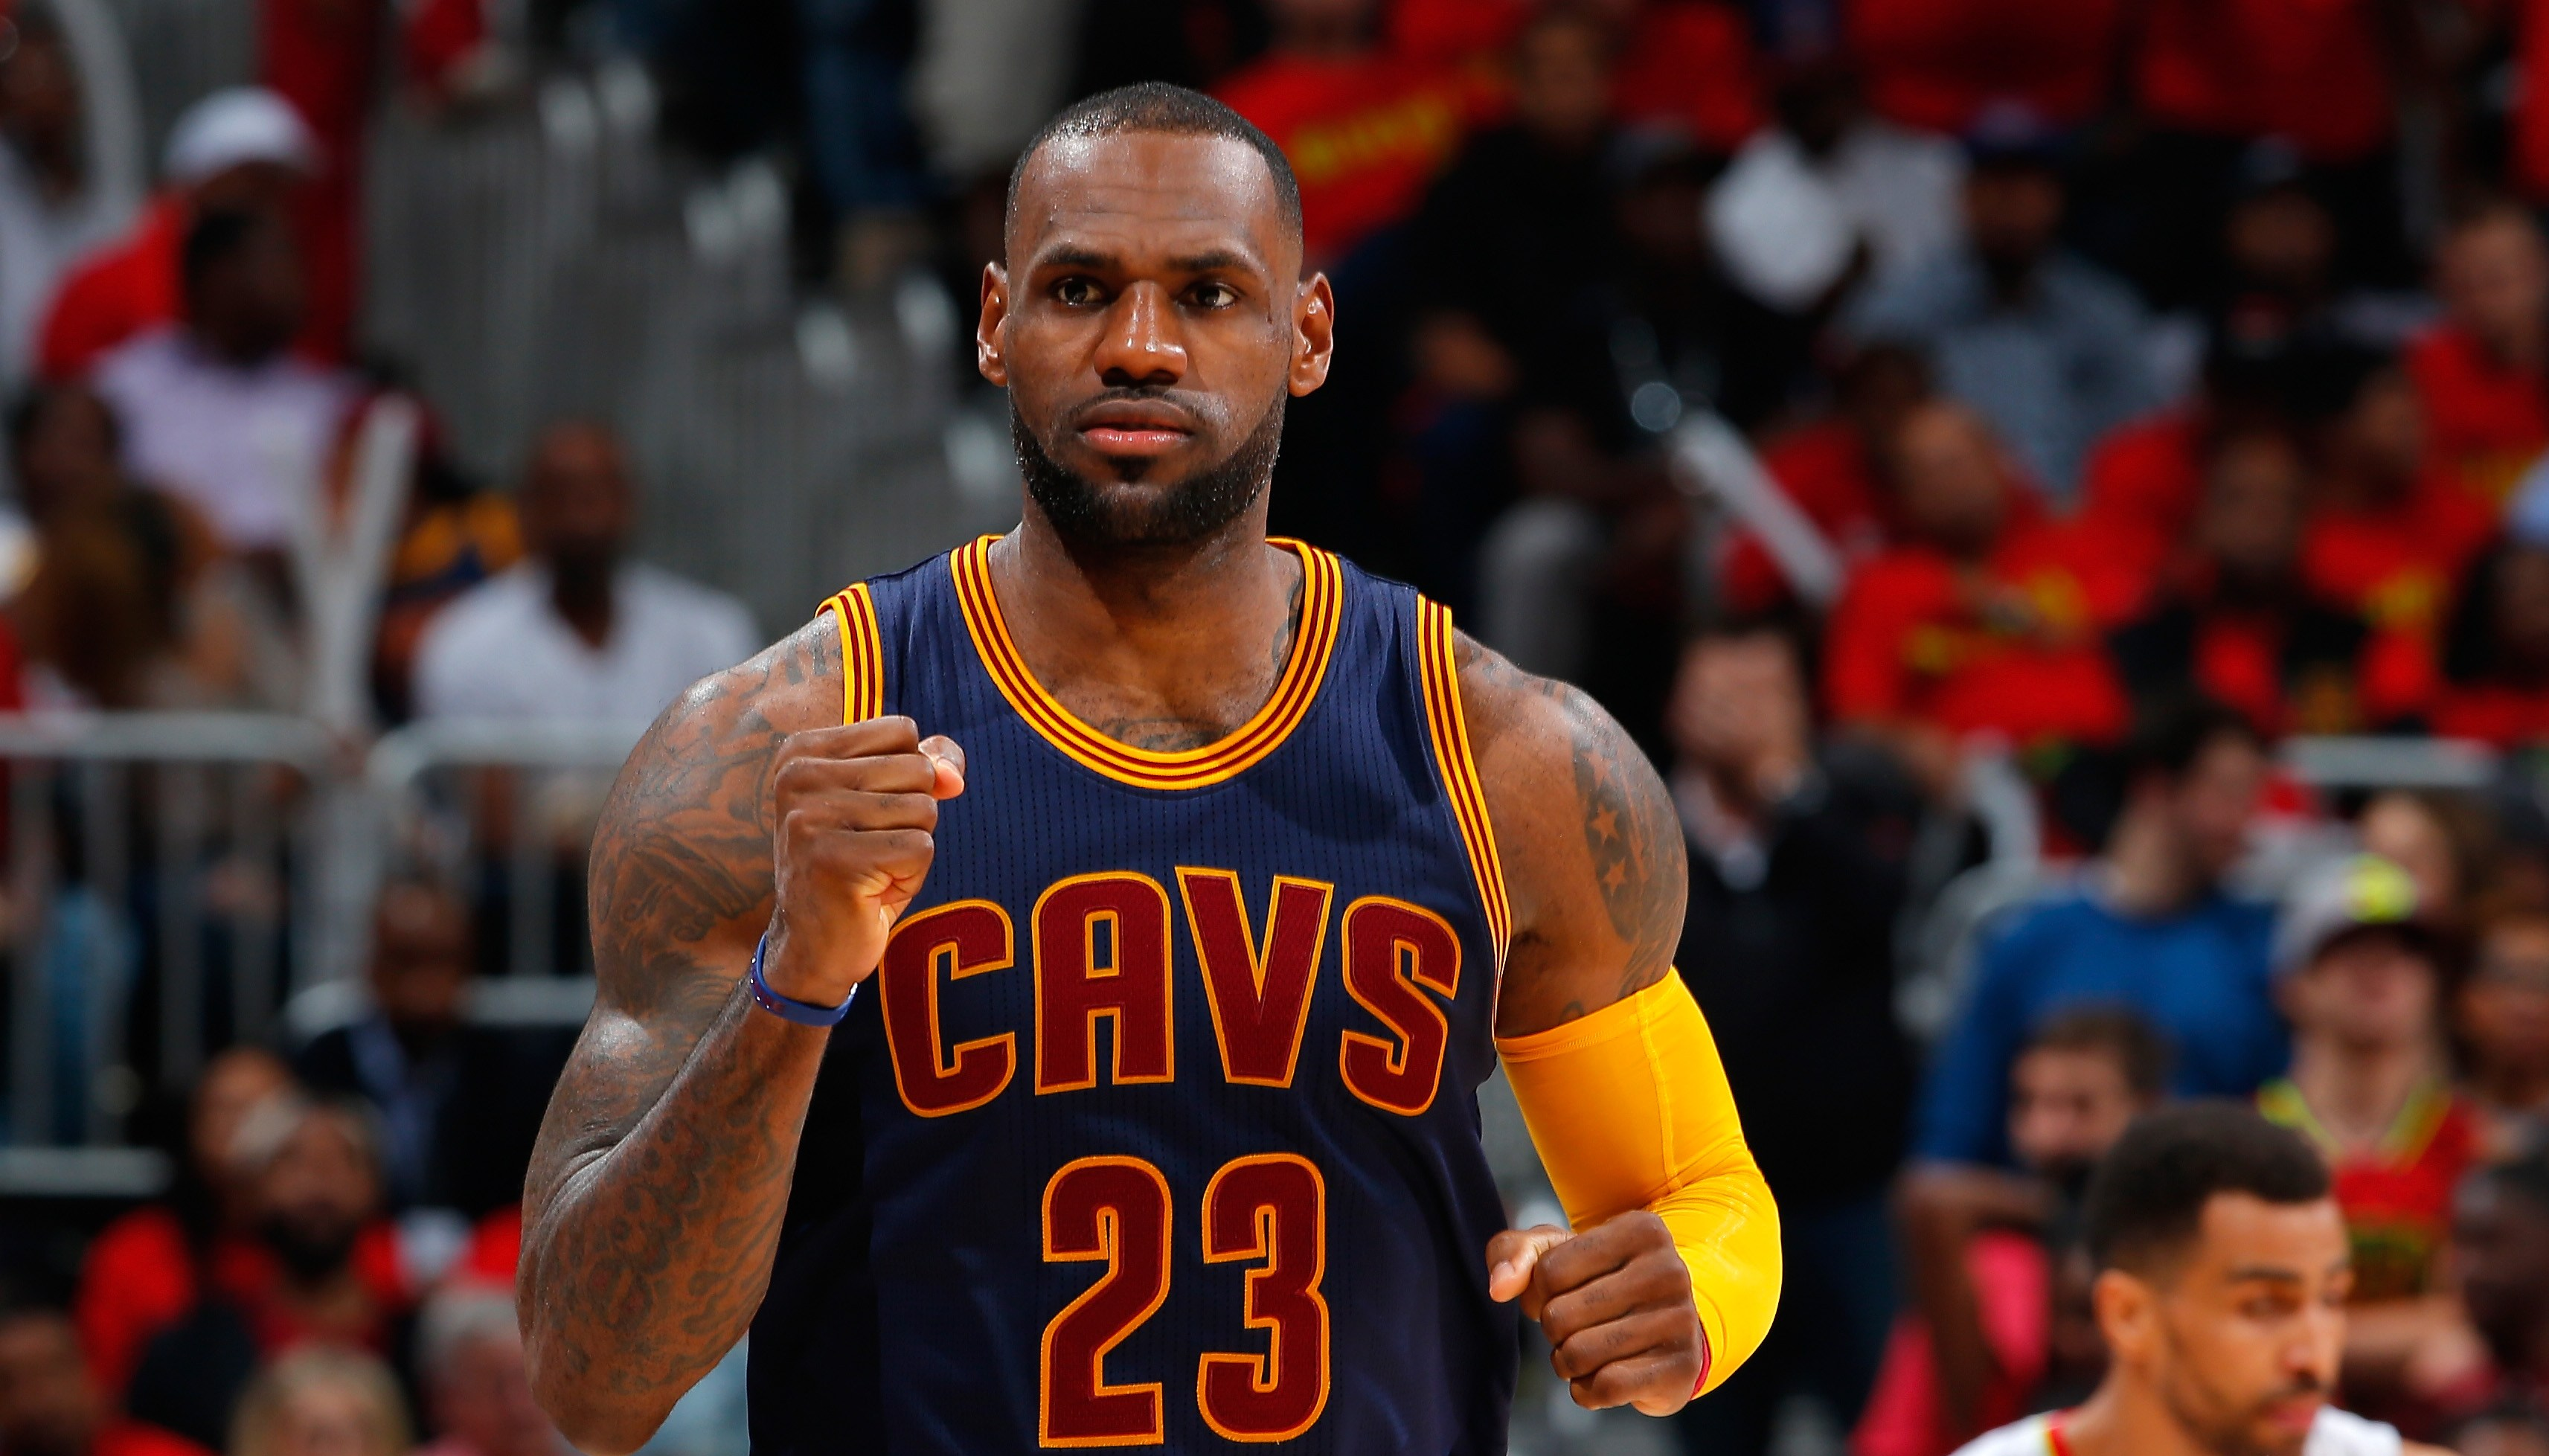 Cleveland Cavaliers v Atlanta Hawks - Game Three